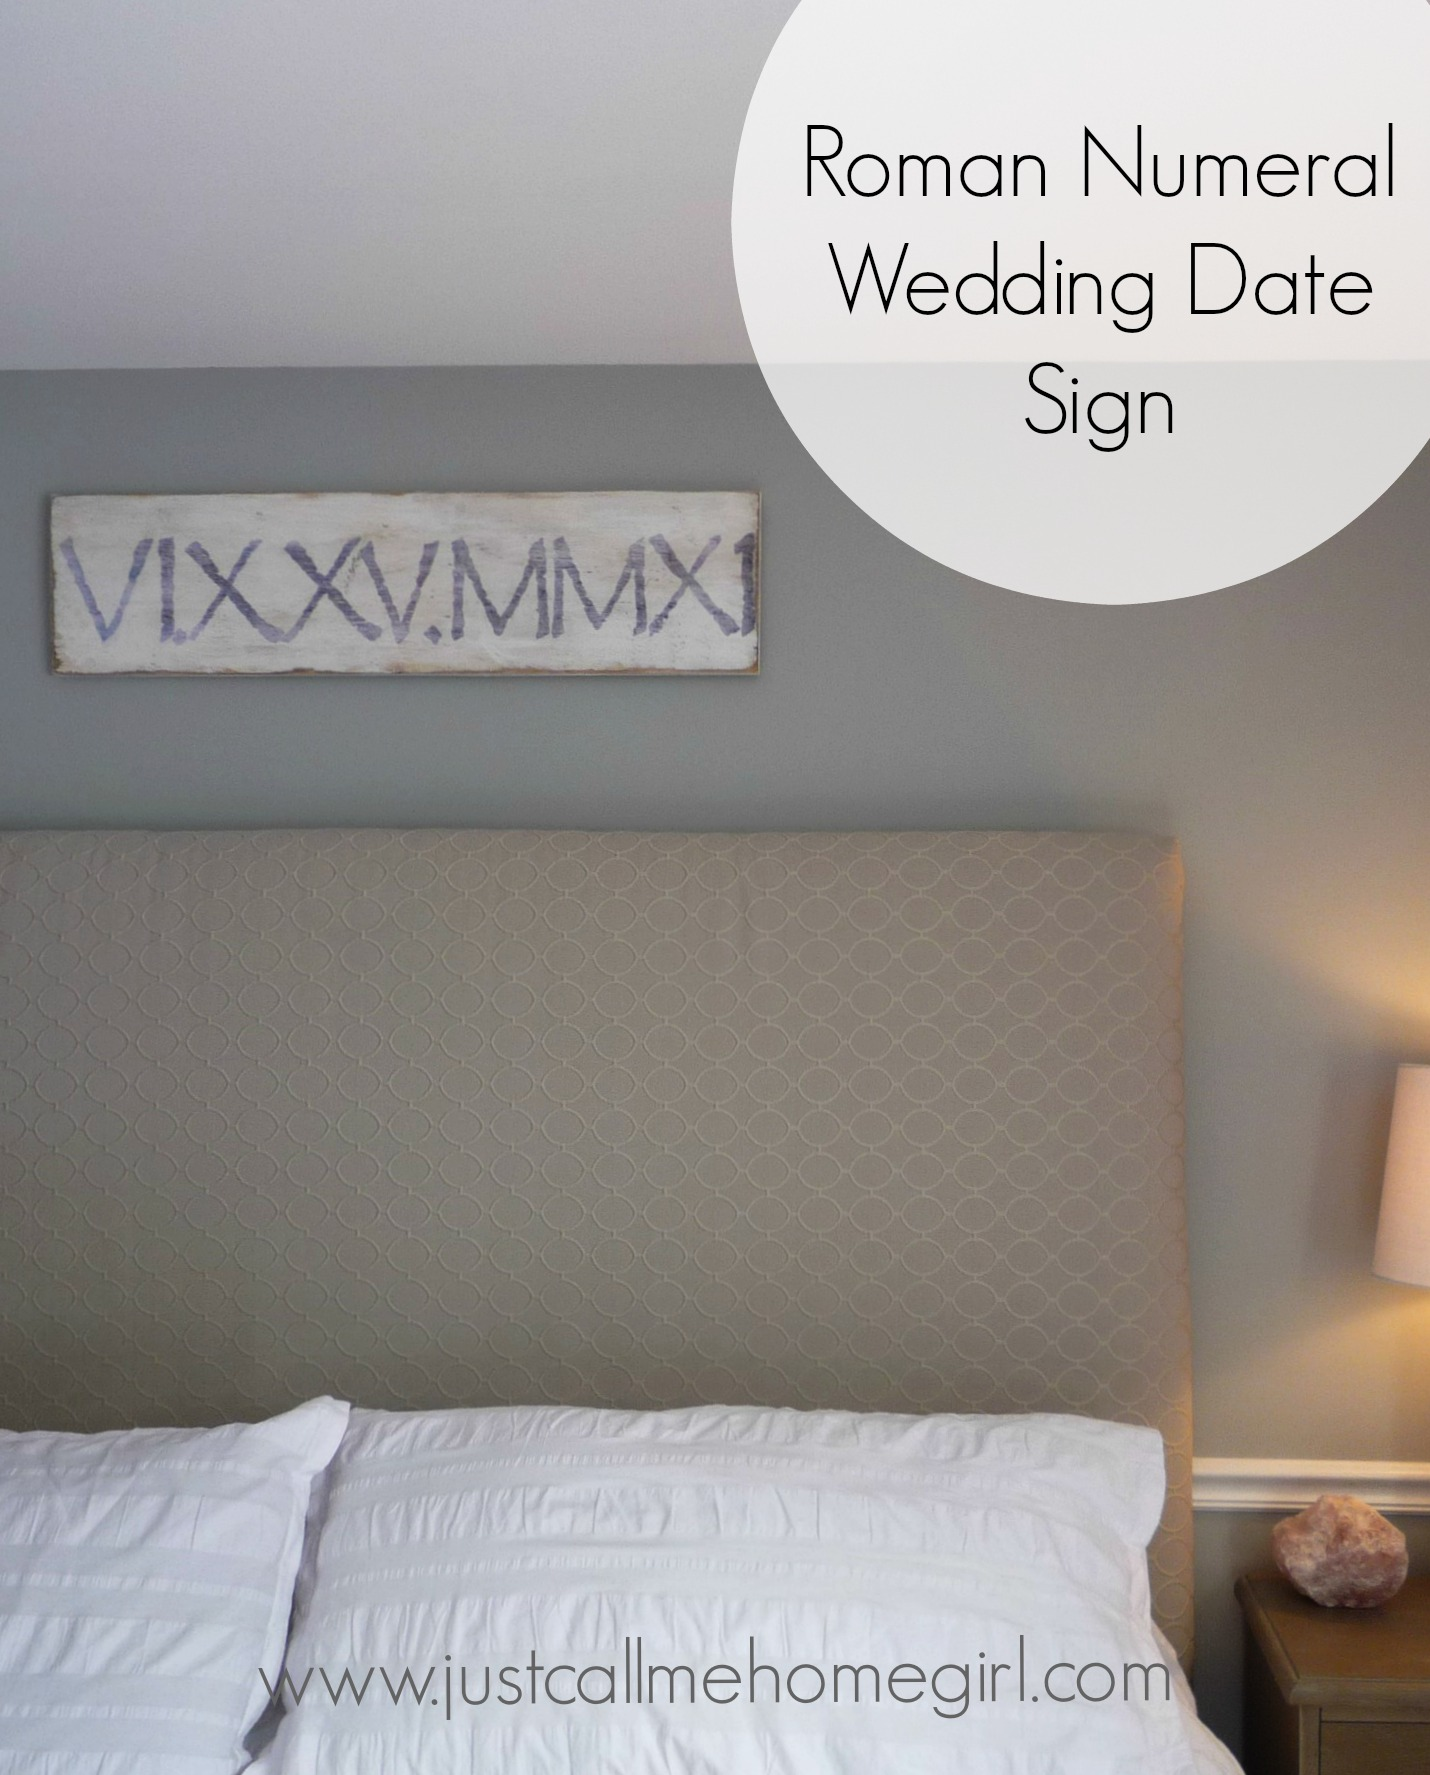 Roman Numeral Wedding Date Sign